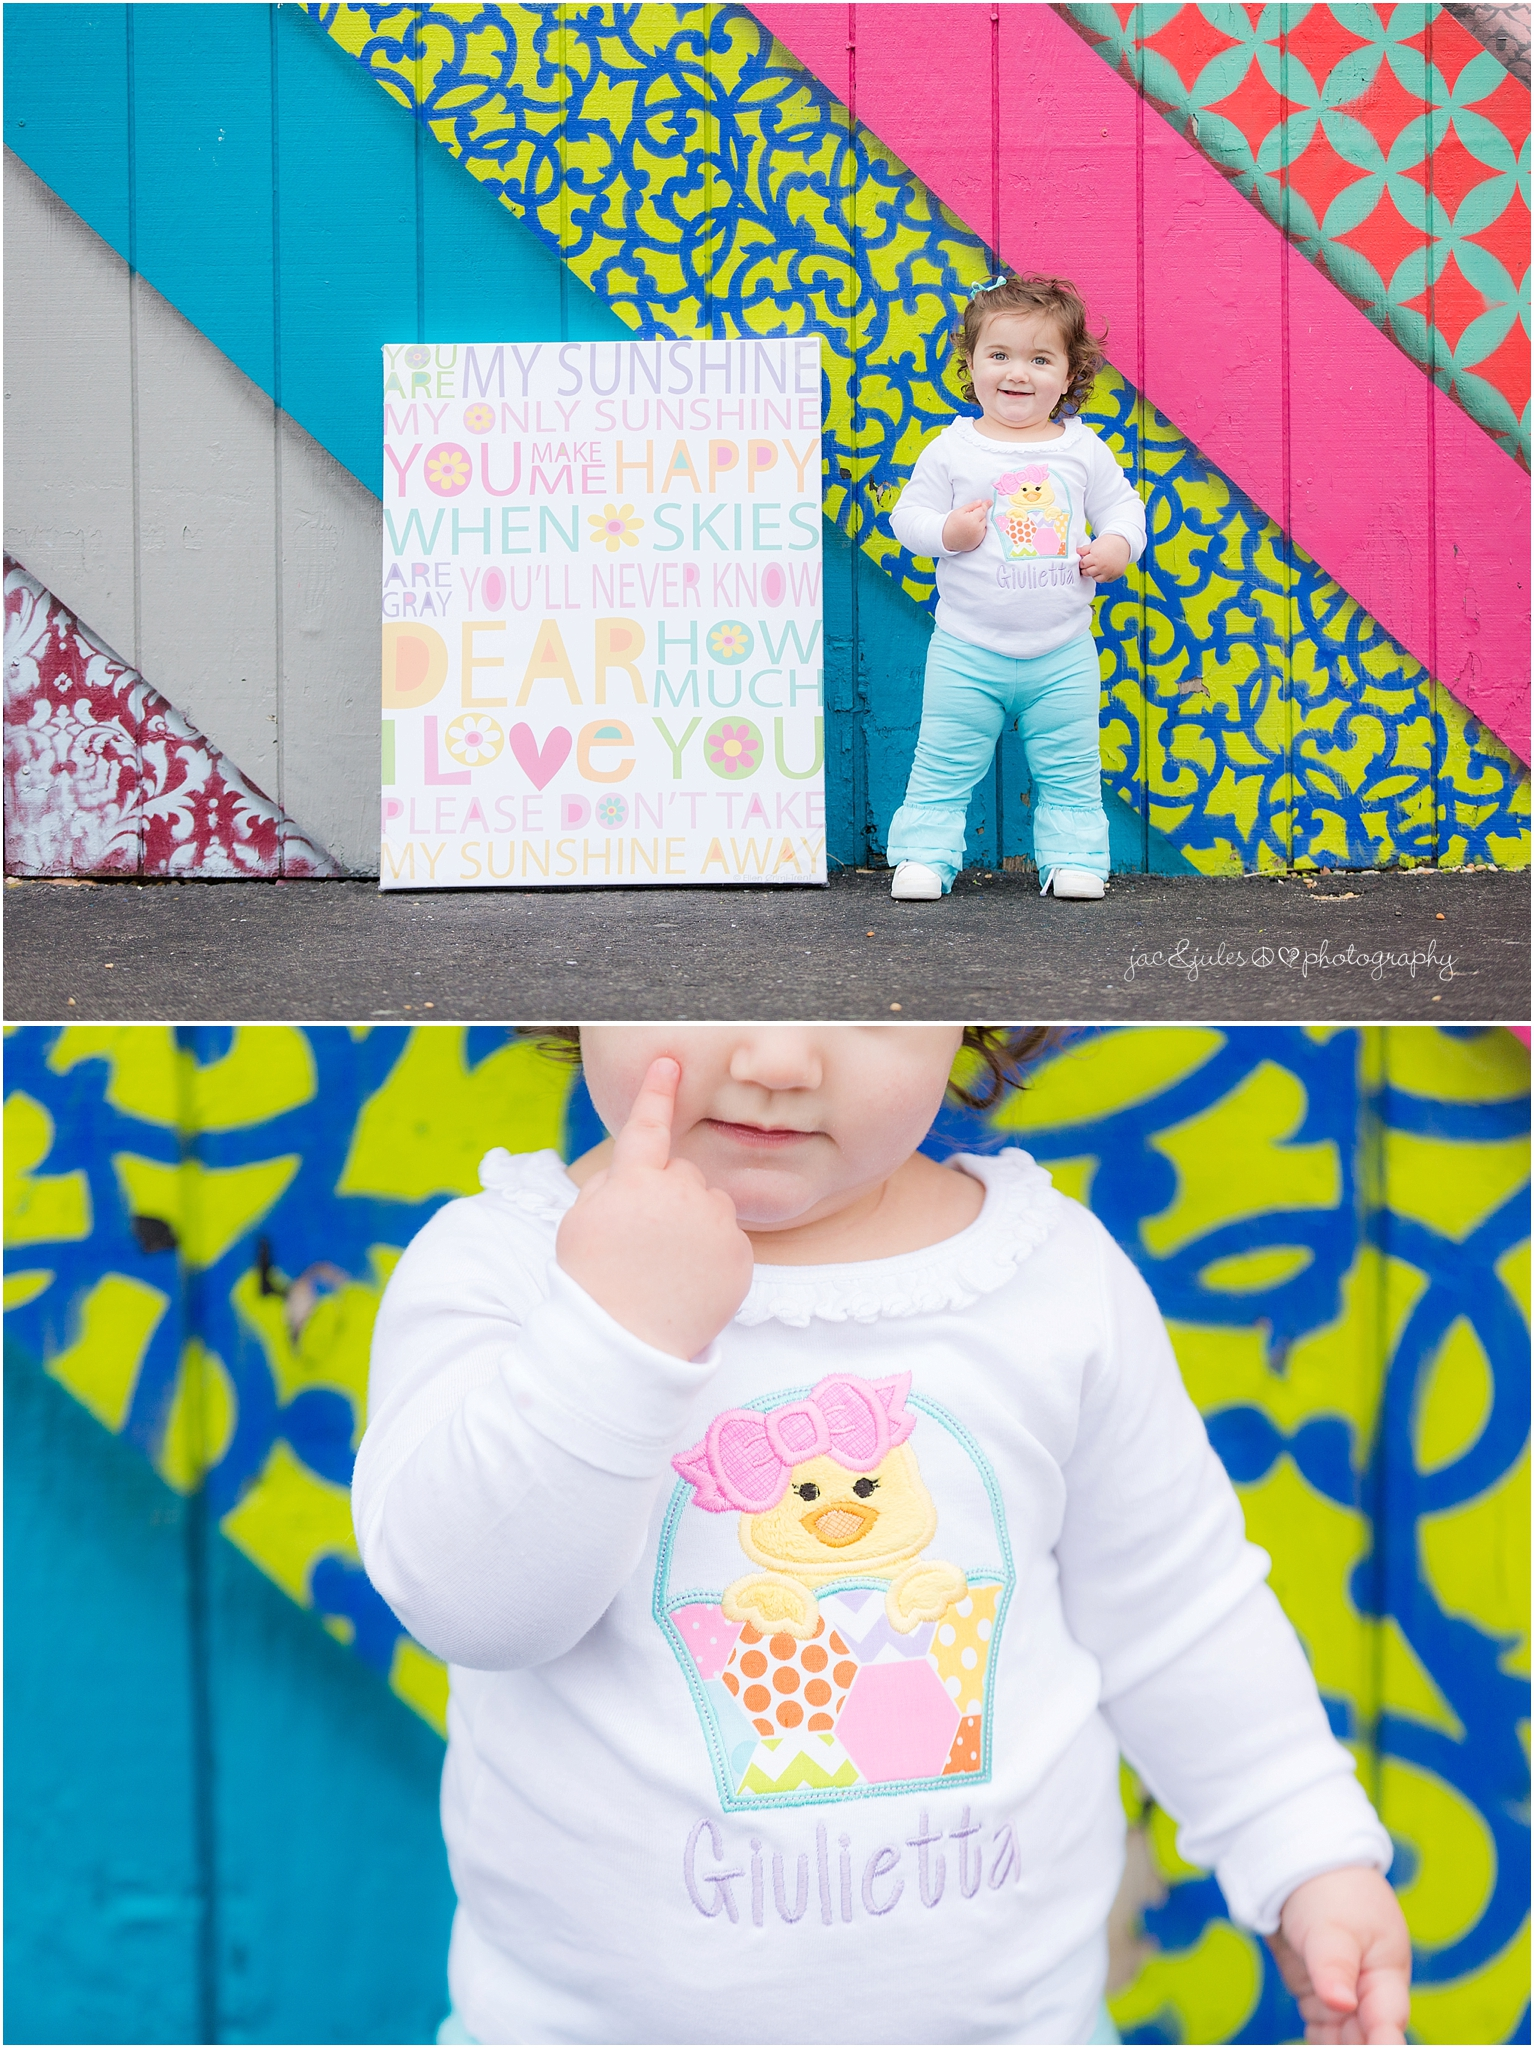 jacnjules photographs cute kid in asbury park, nj for Easter pictures